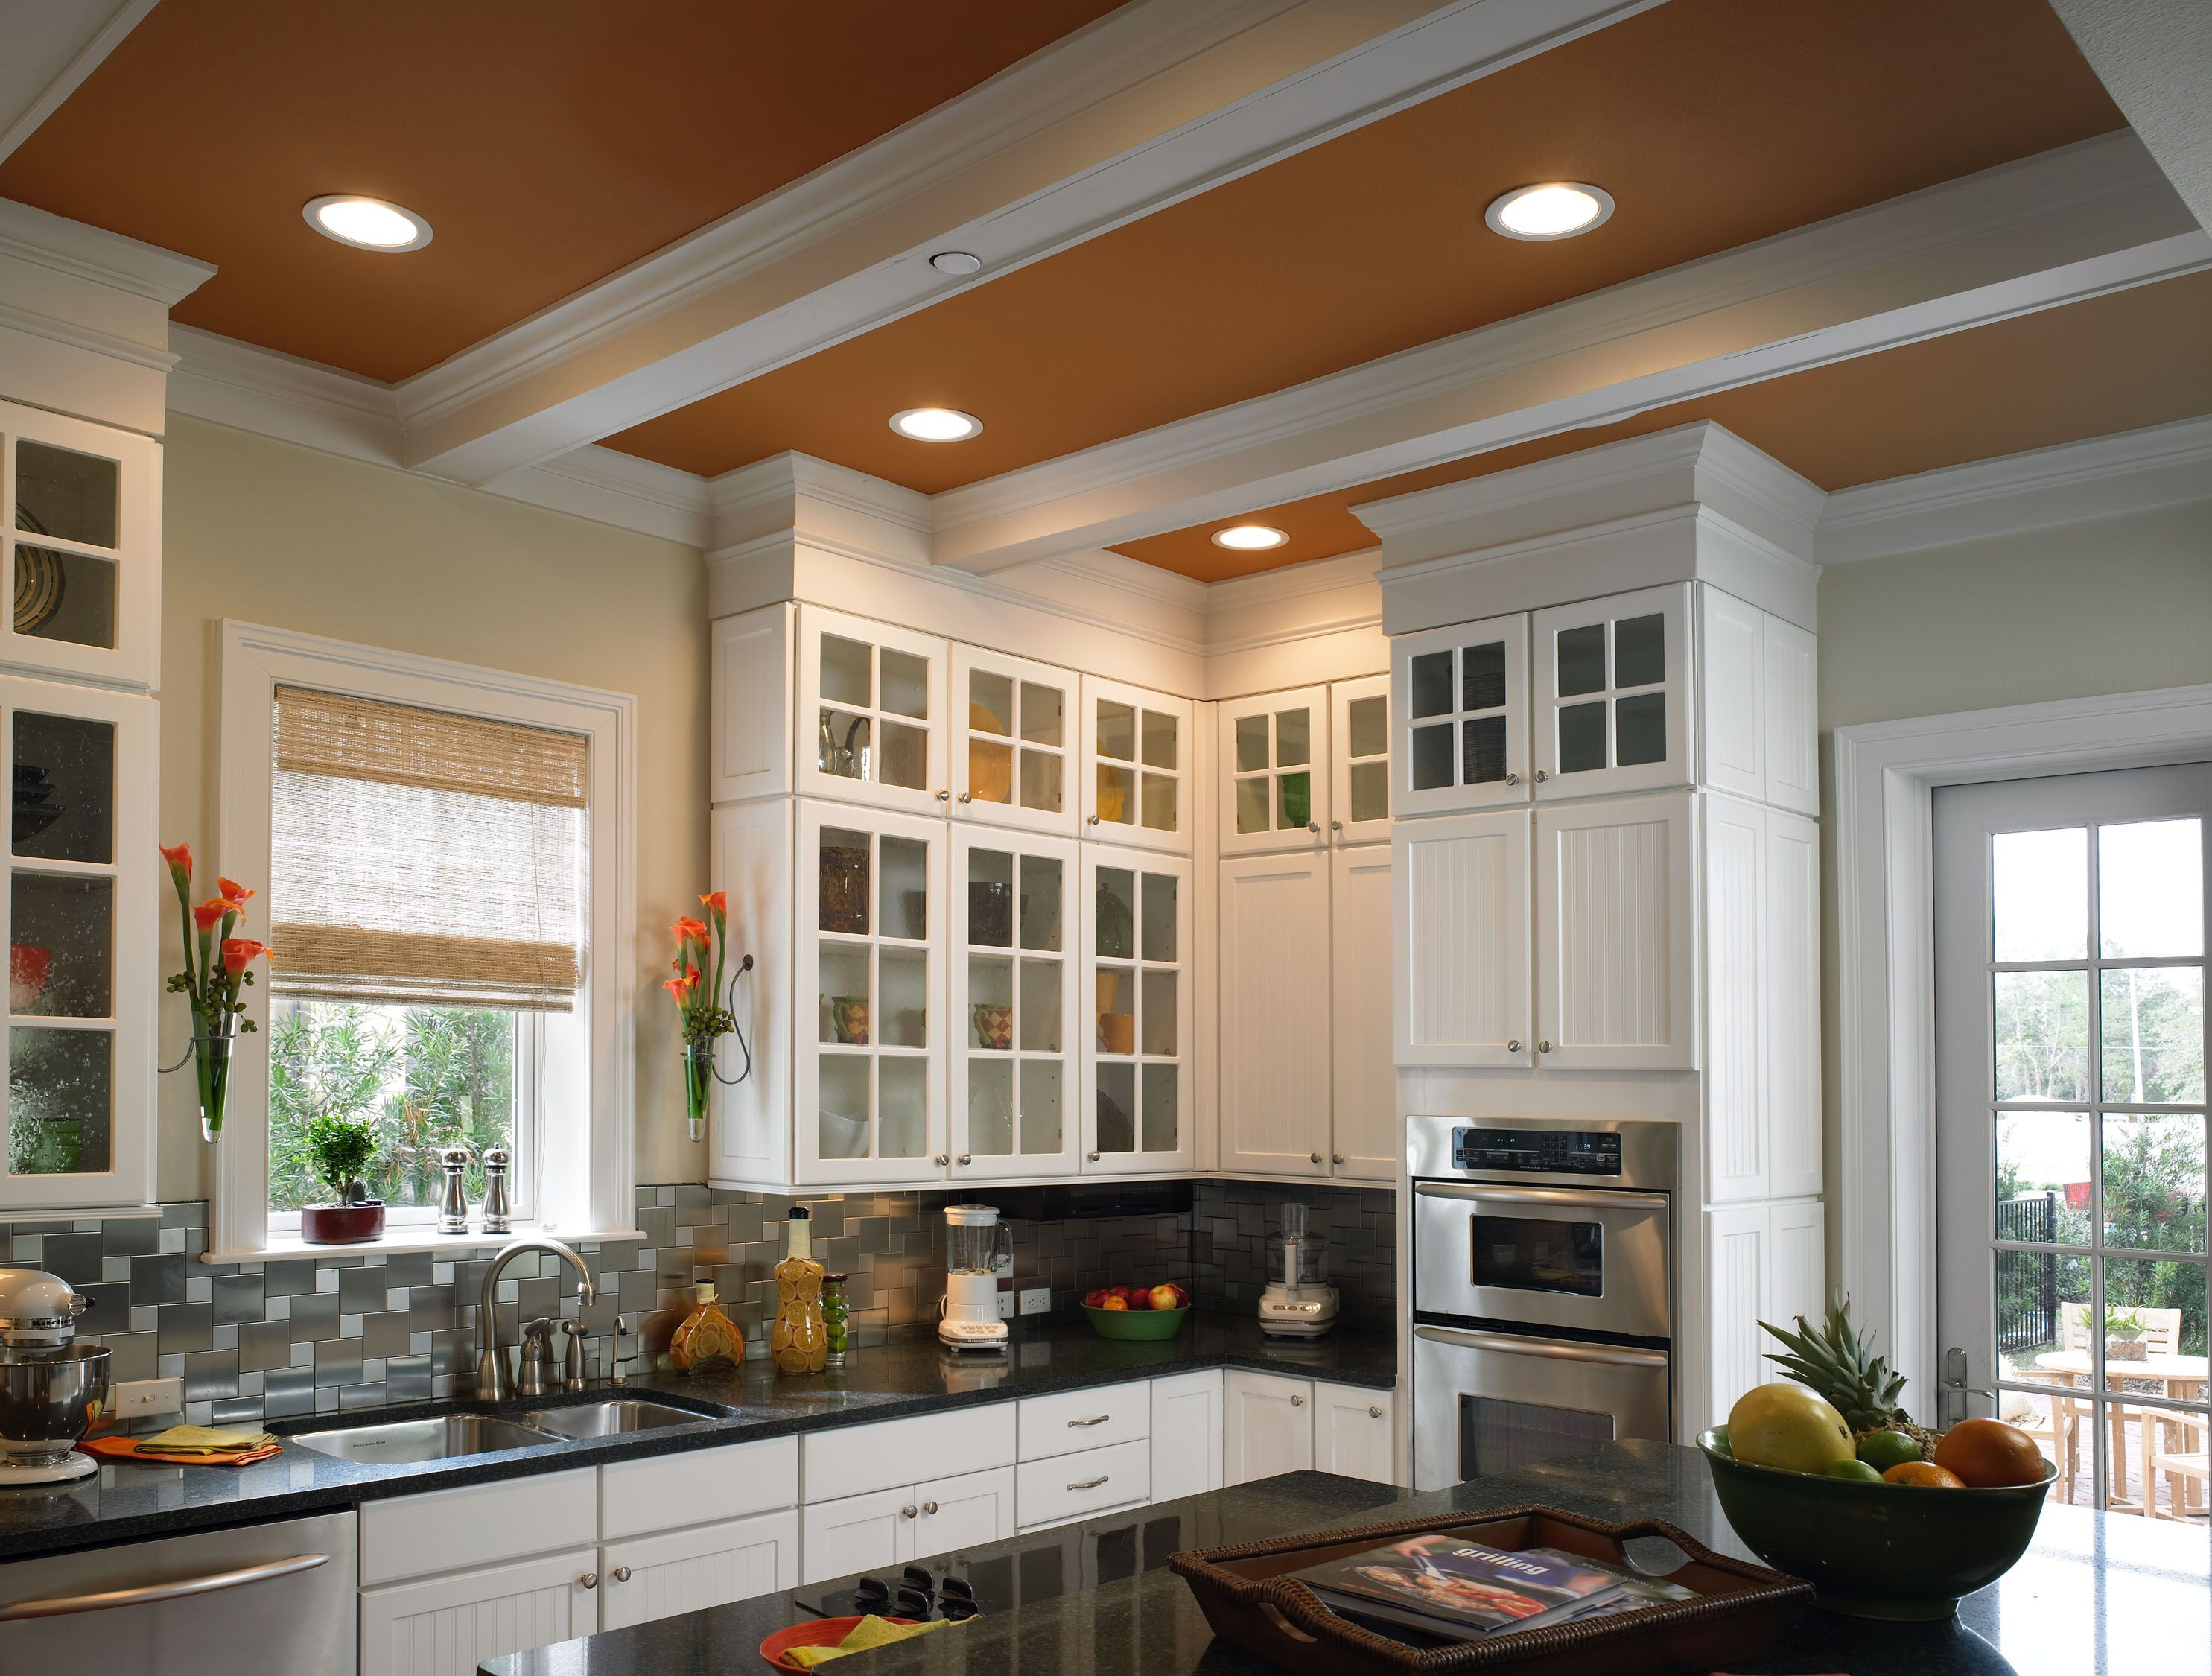 For Kitchen Ceilings Decorative Ceiling Beams Ideas Fypons Faux Beams And A Bold